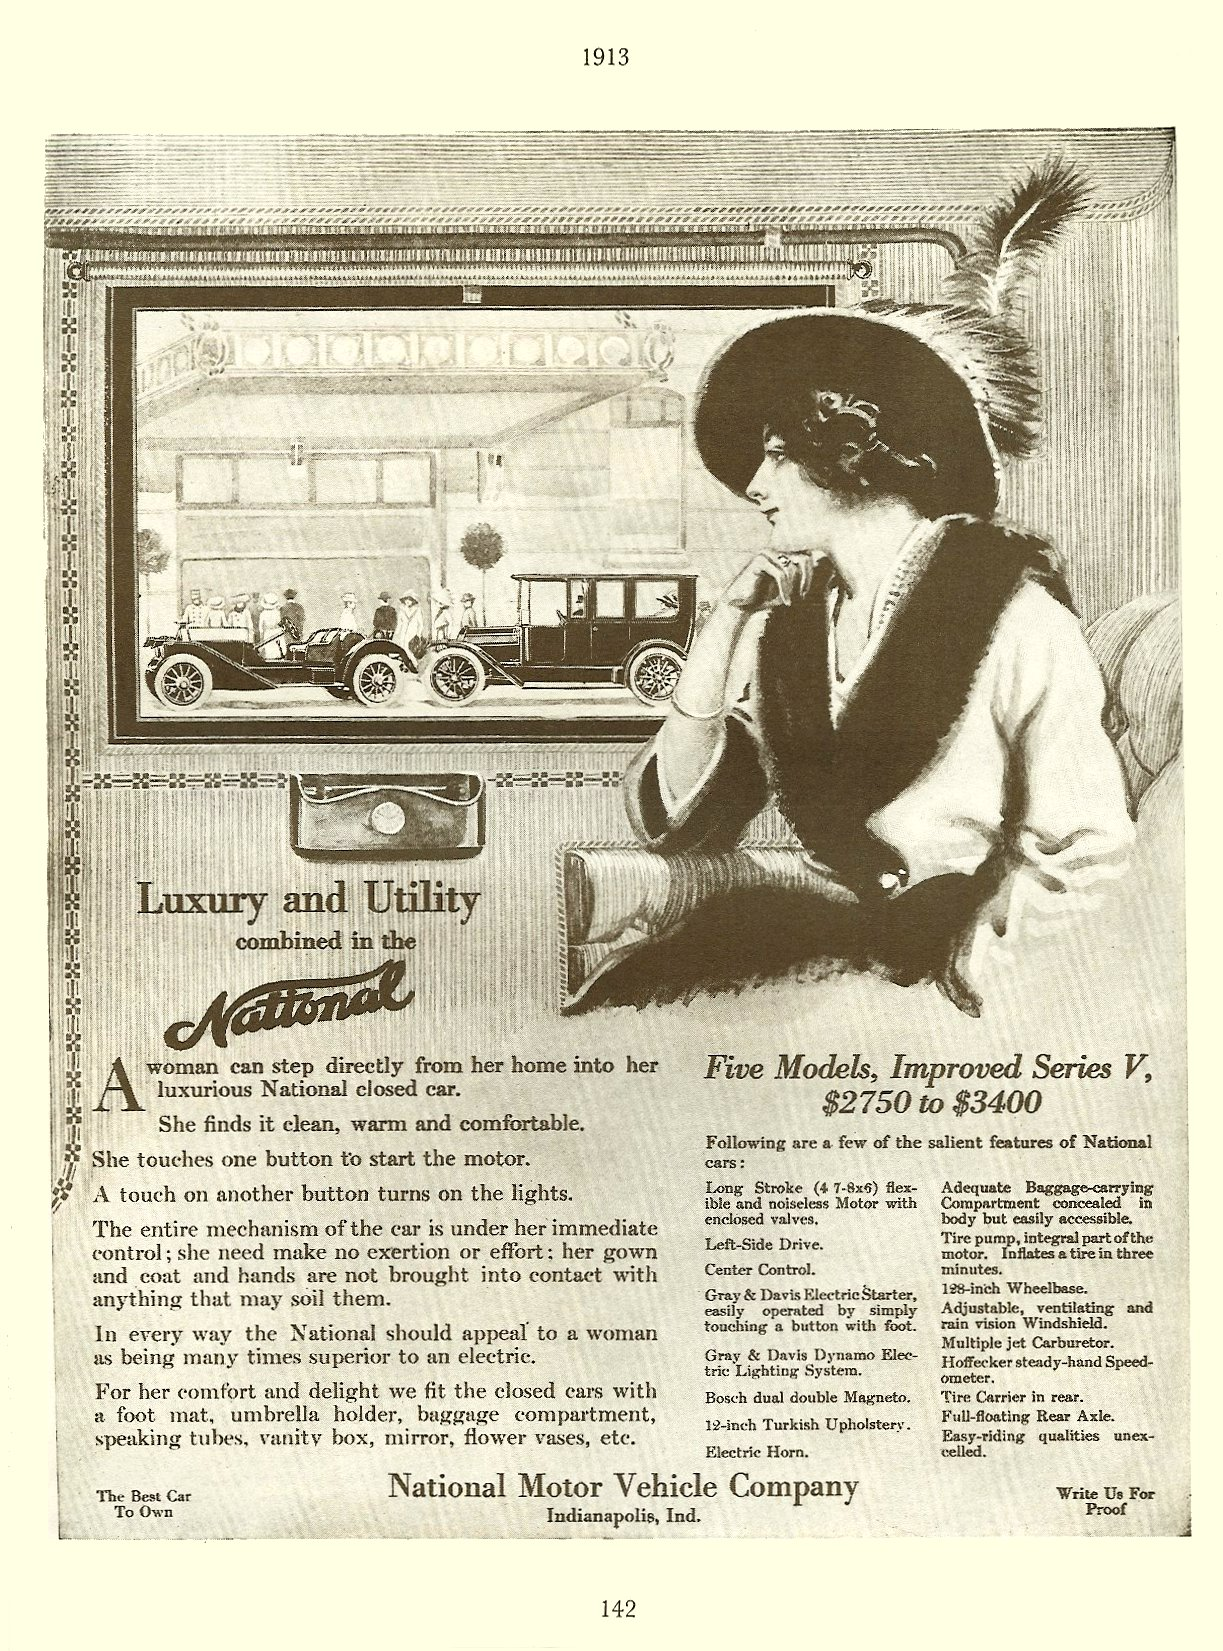 1913 NATIONAL magazine ad 1895-1930 The Wonderful World of AUTOMOBILES Edited By Joseph J Schroeder, Jr., 1971 ISBN: 0-695-80223-2 page 142